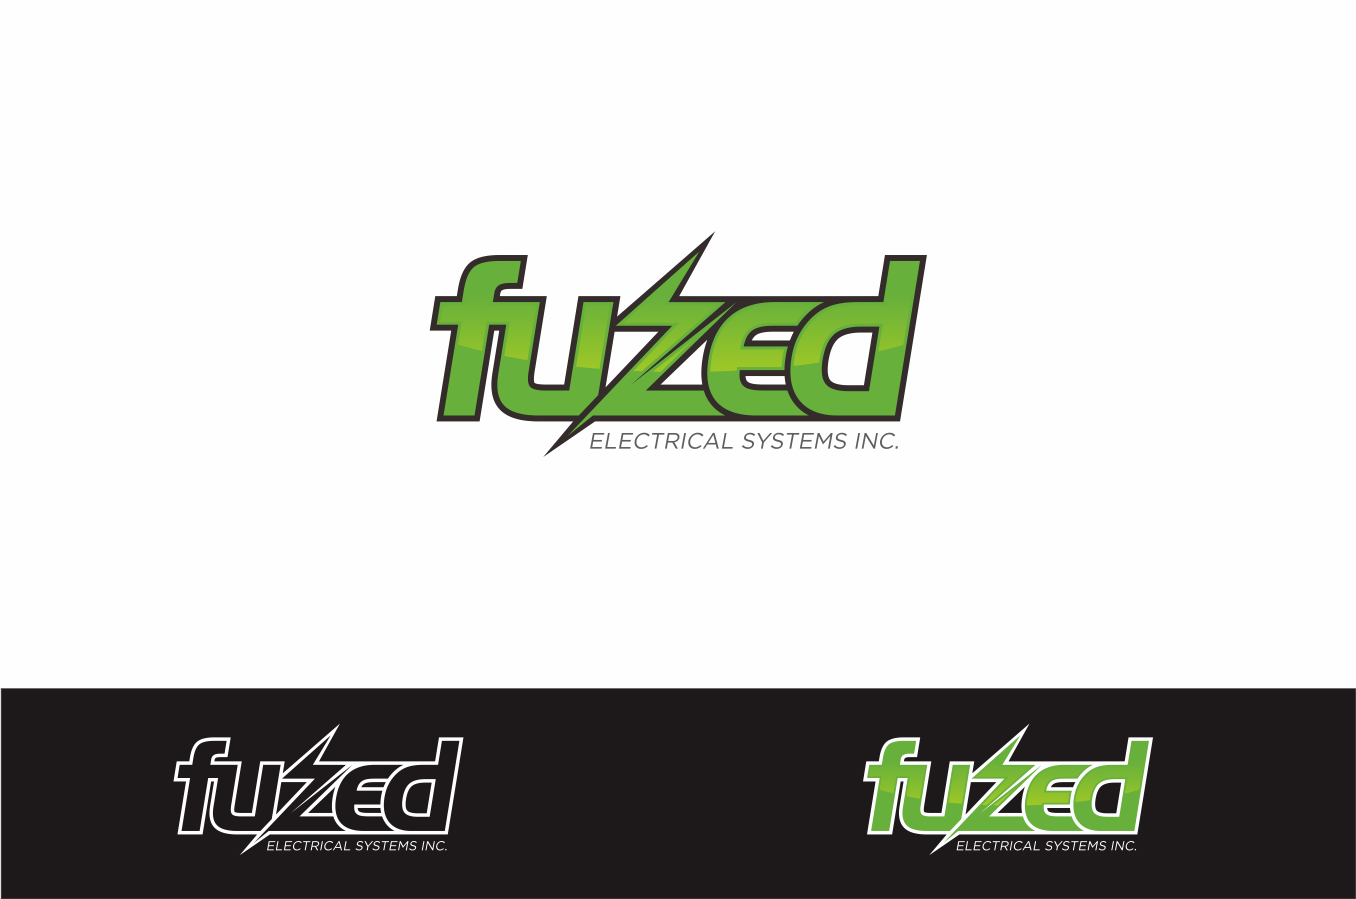 New logo wanted for Fuzed Electrical Systems Inc.